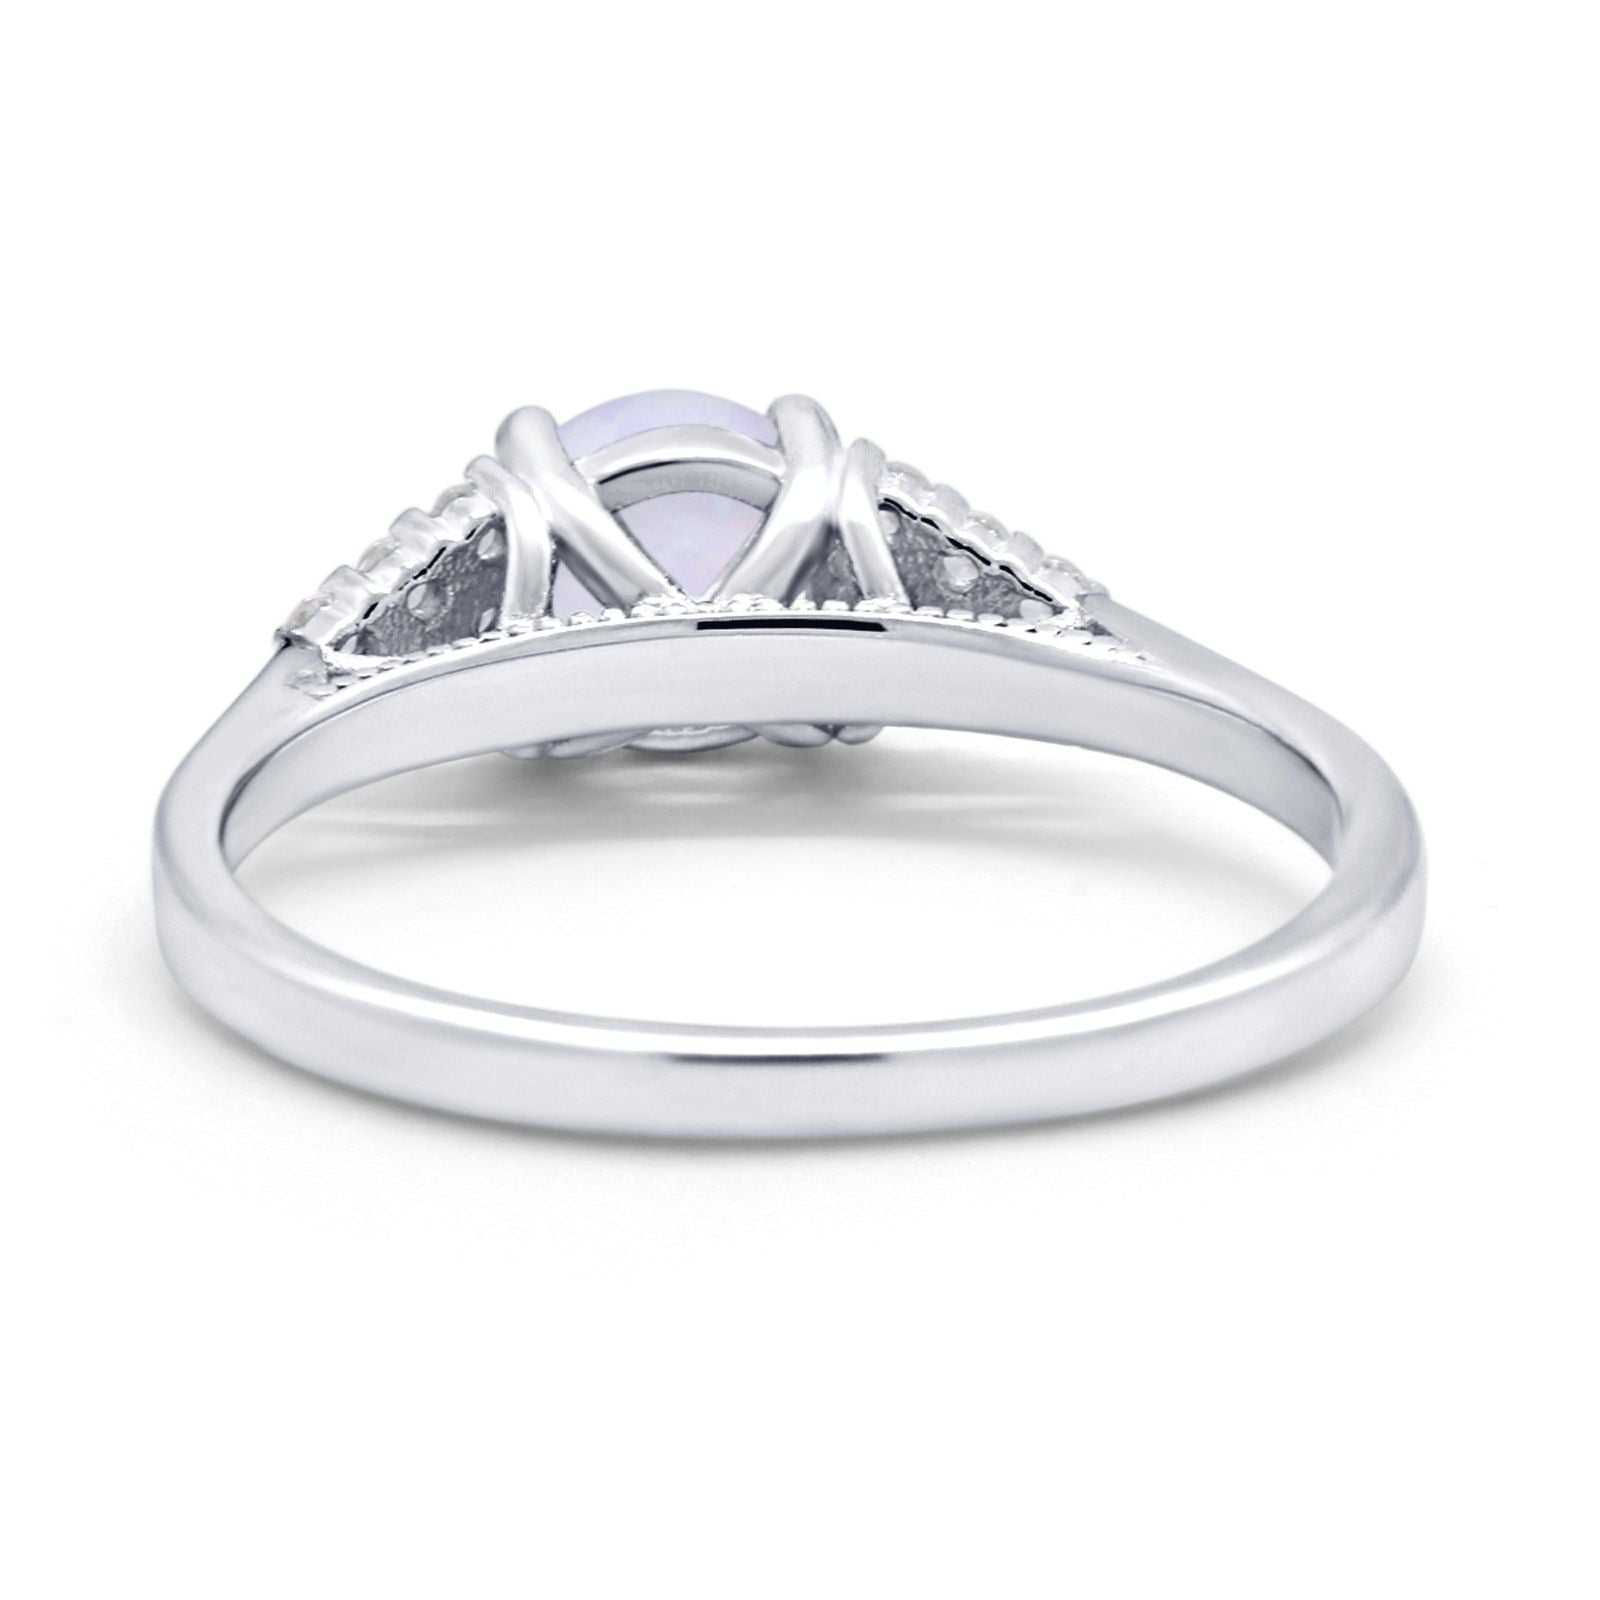 Wedding Ring Bridal Simulated Round Cubic Zirconia 925 Sterling Silver